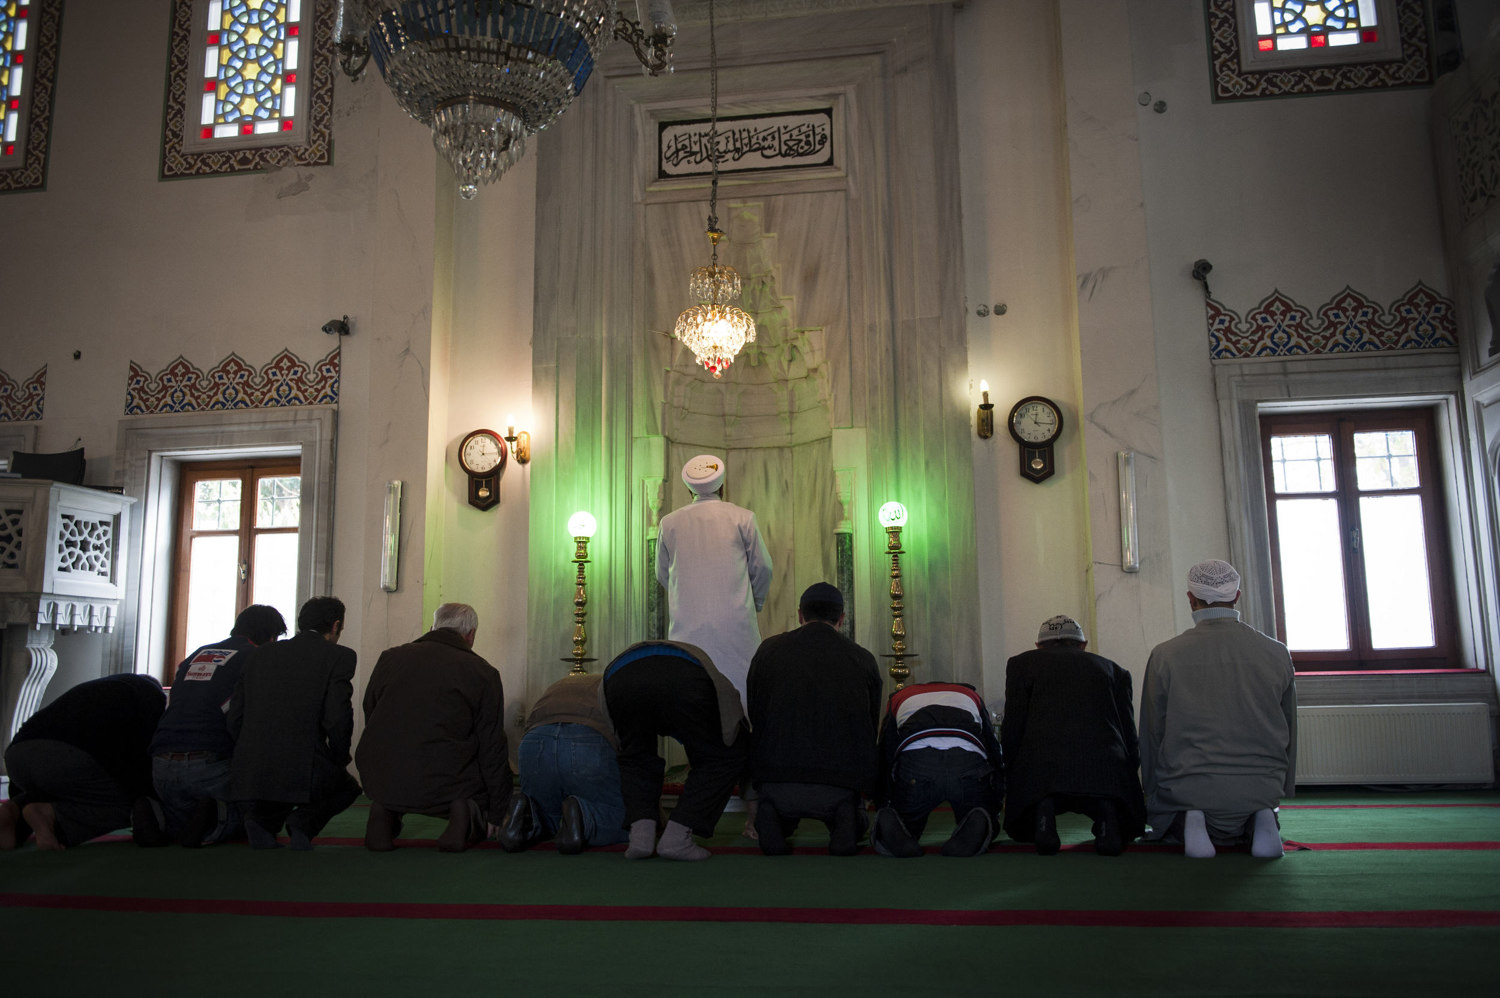 Imam Mehmet Ilhan sings a warm-up azan and then leads prayer at Ebul Fadil Mehmet Efendi Cami in Cihangir where he has been the Imam for over five years. Imams and other religions scholars attend singing lessons held by the Beyoglu Müftülüğü¸ in Istanbul Turkey.